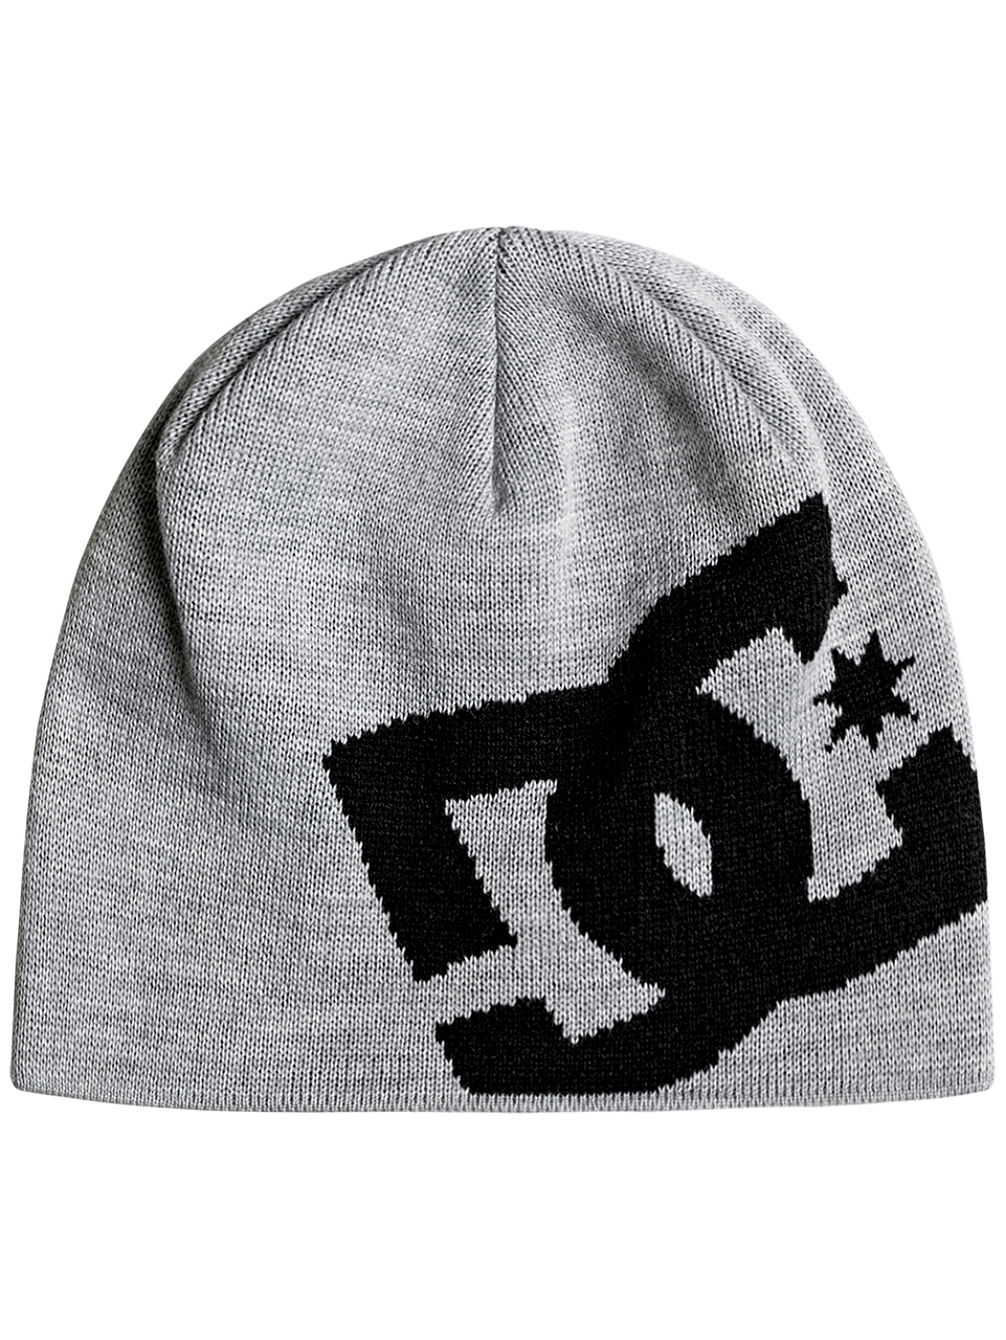 Big Star Cap